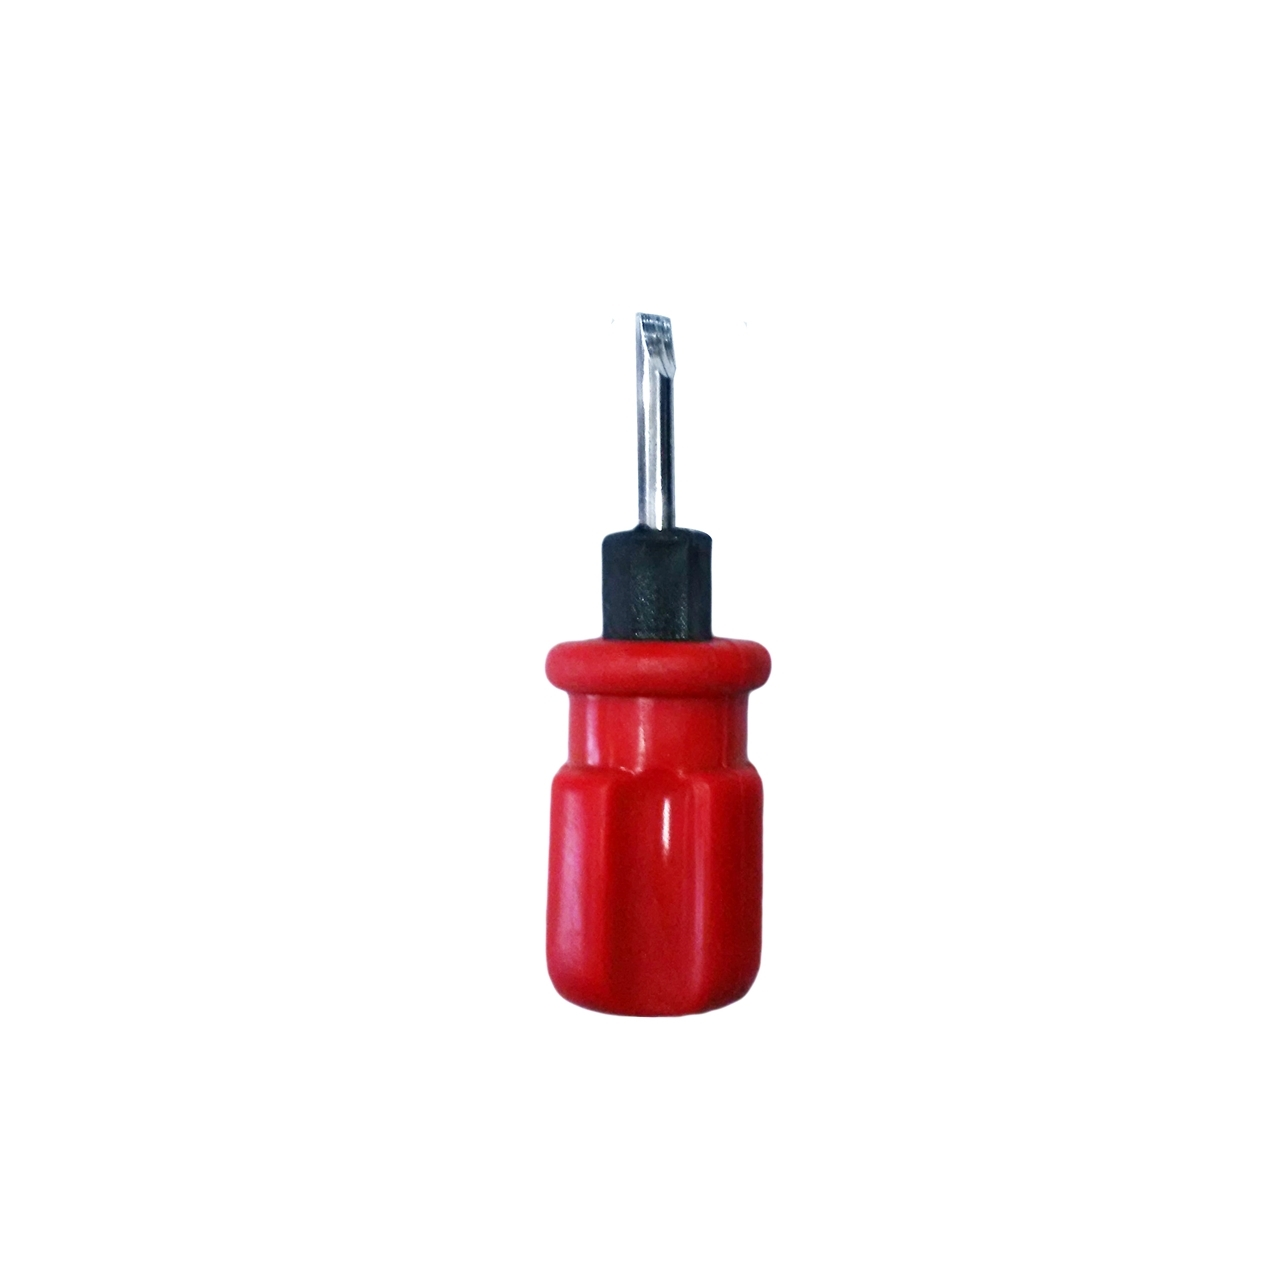 Screw Driver Two Way Small Size